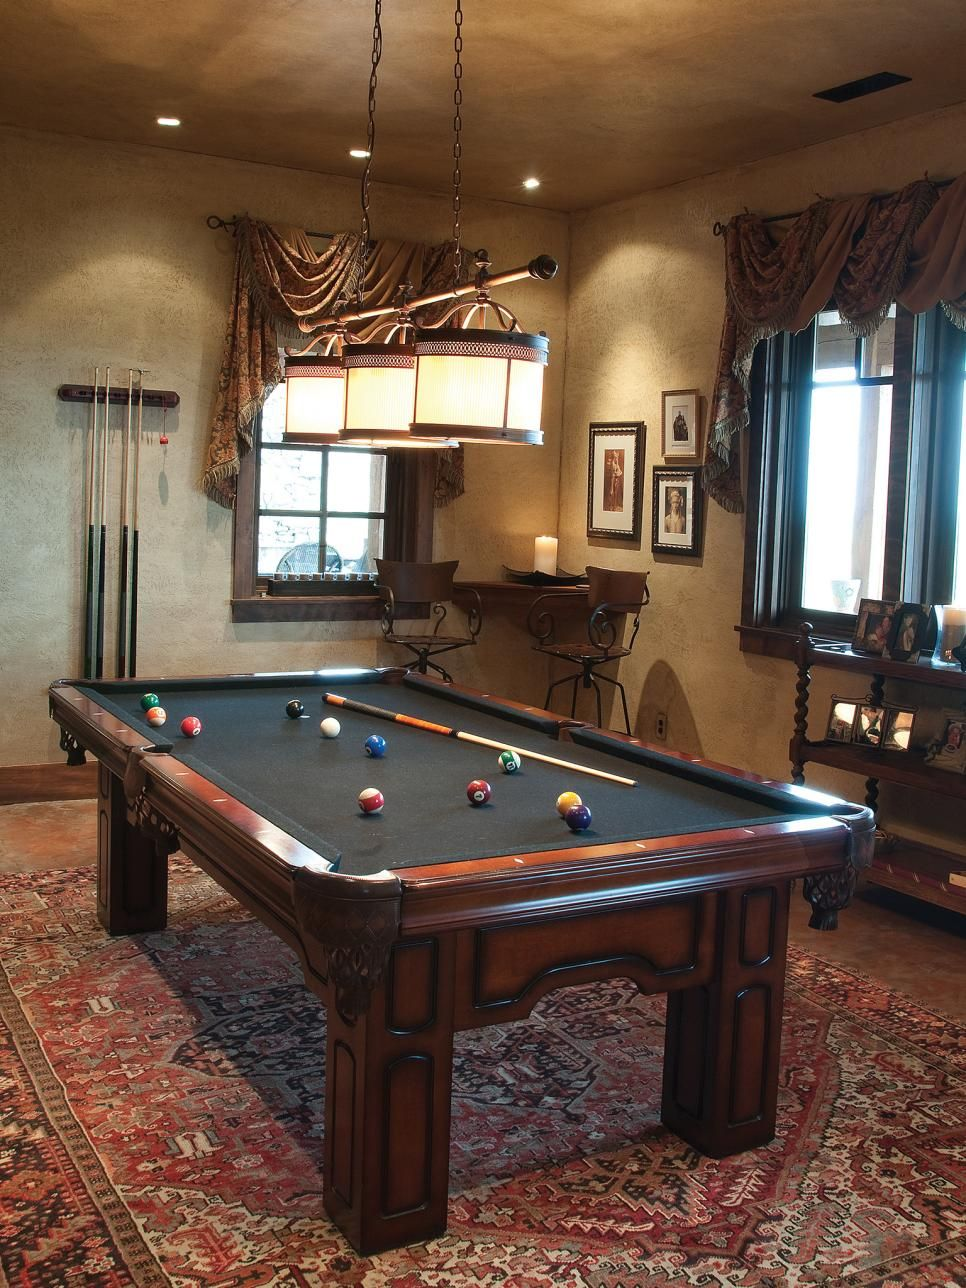 A lotuspattern Oriental carpet and antique pool table